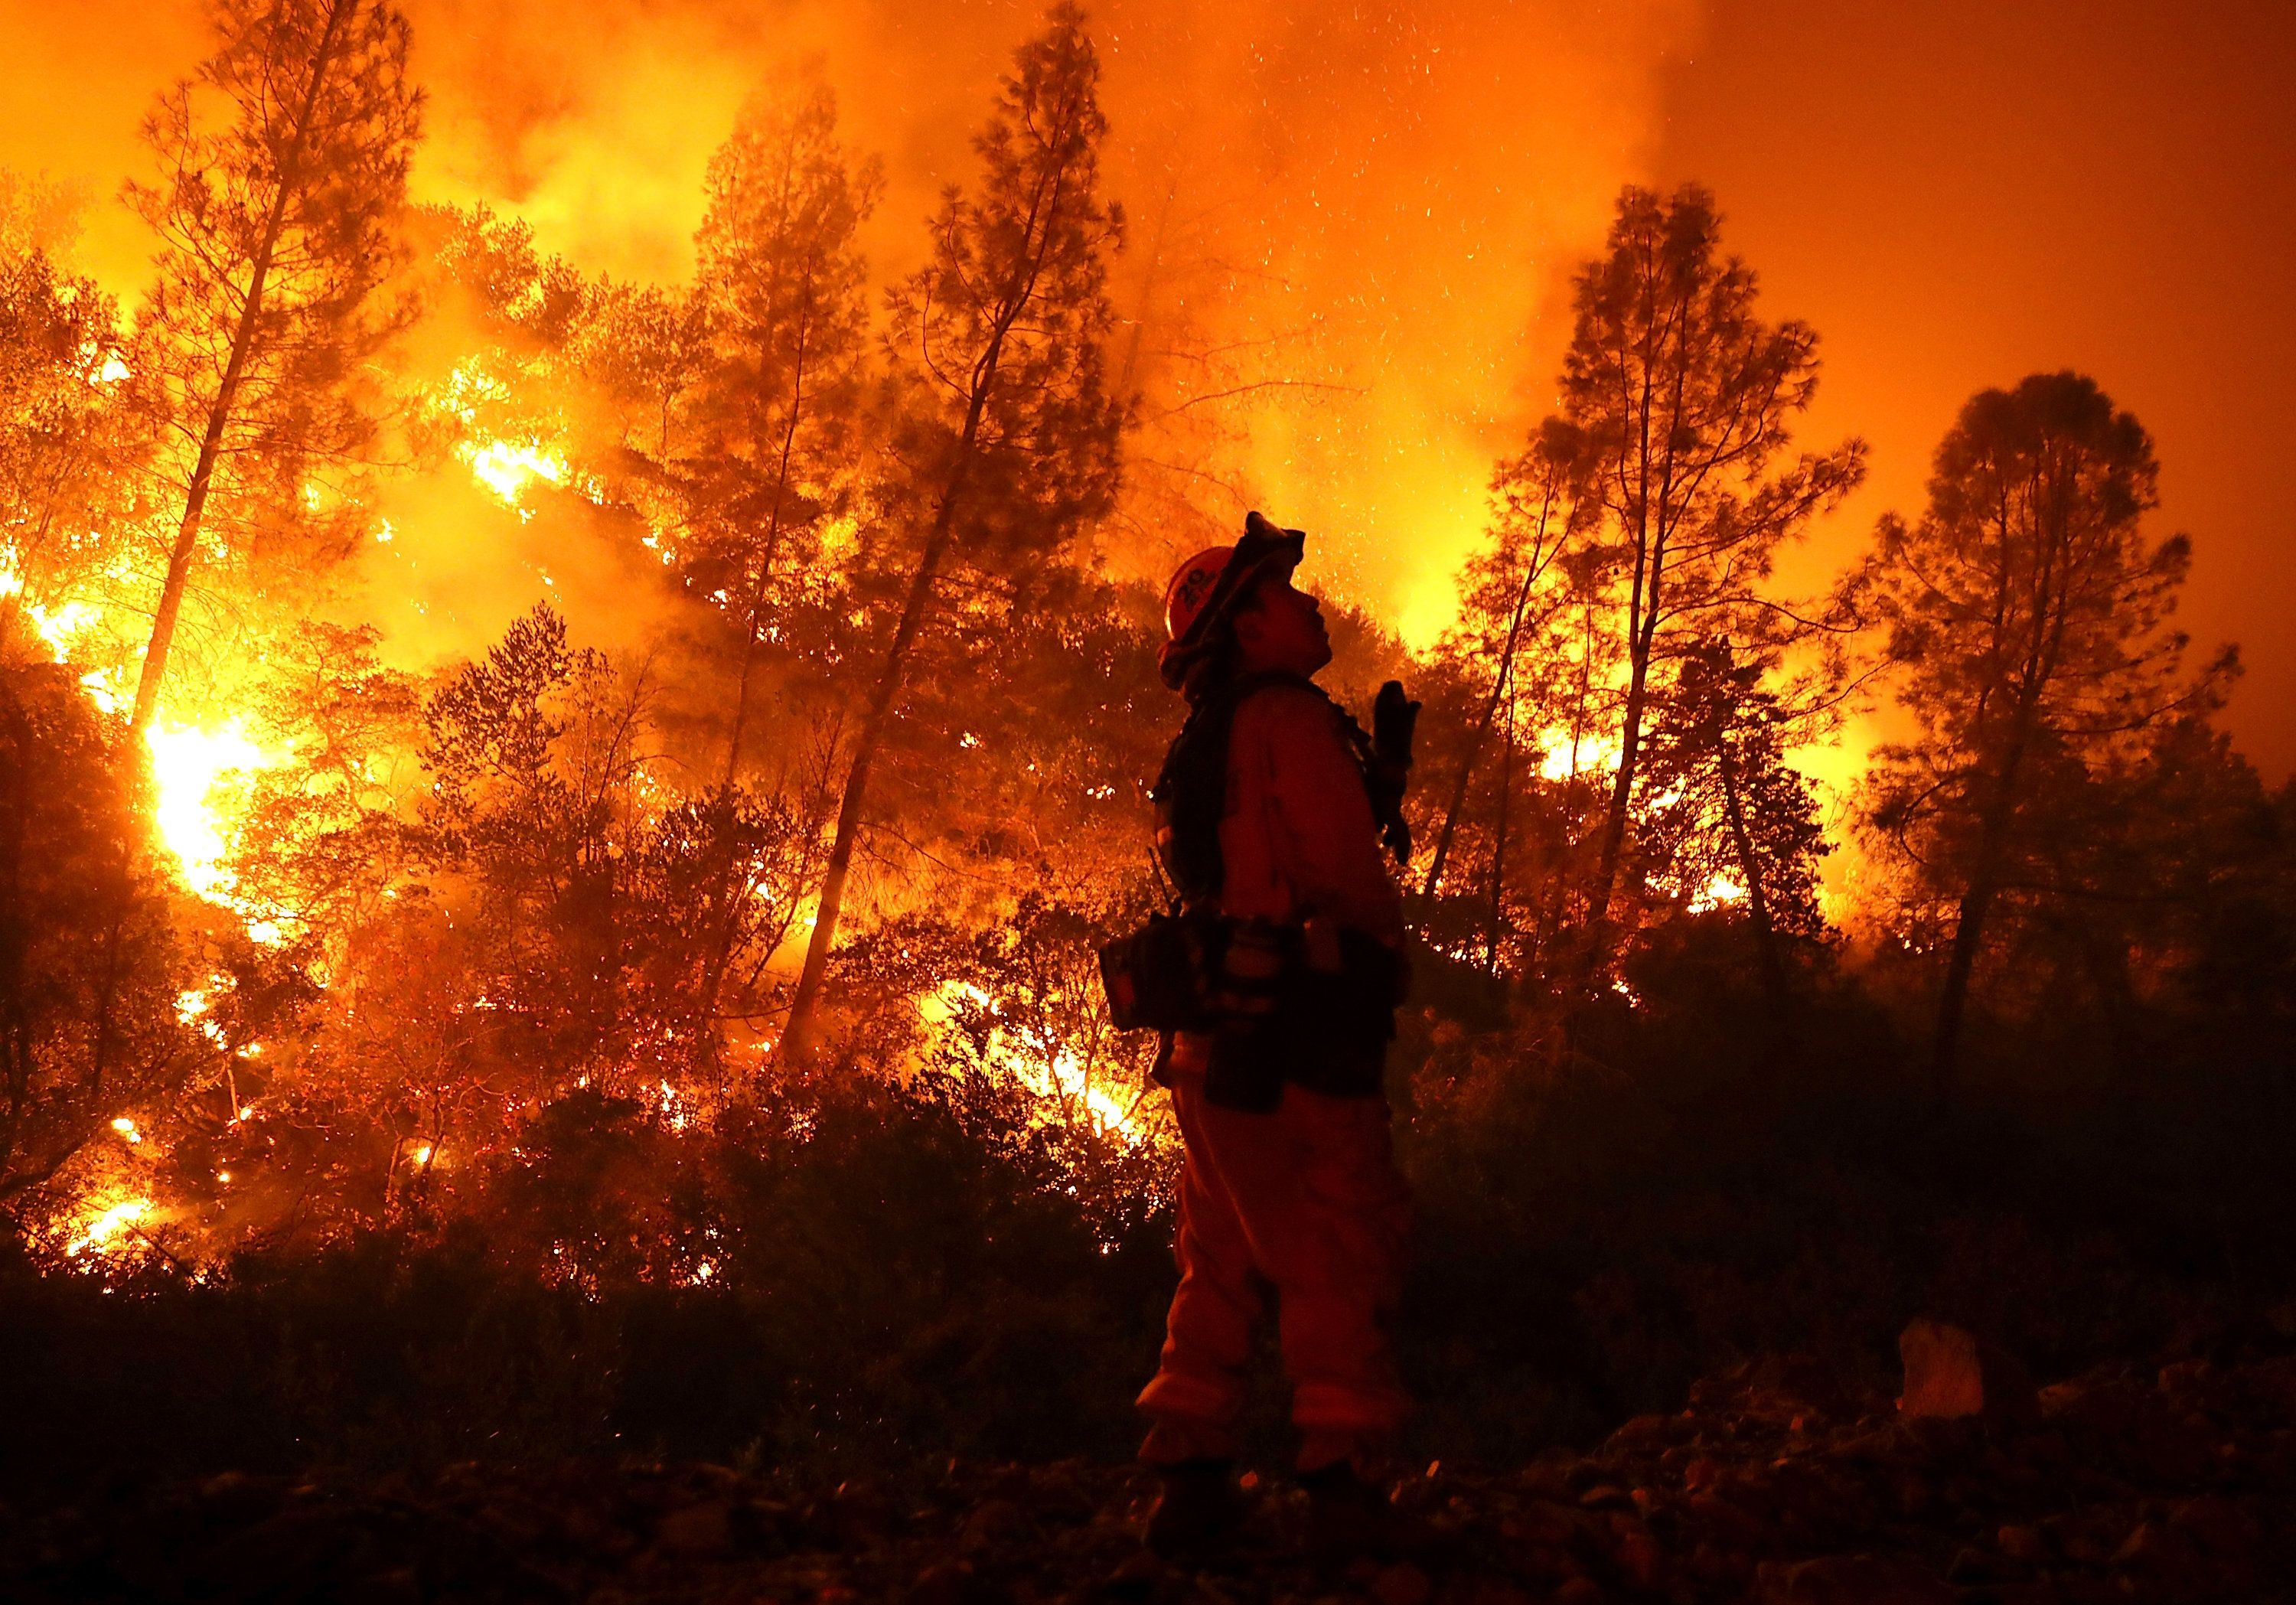 A firefighter monitors a backfire while battling the Mendocino Complex blaze on Aug. 7 near Lodoga, California. So far this y